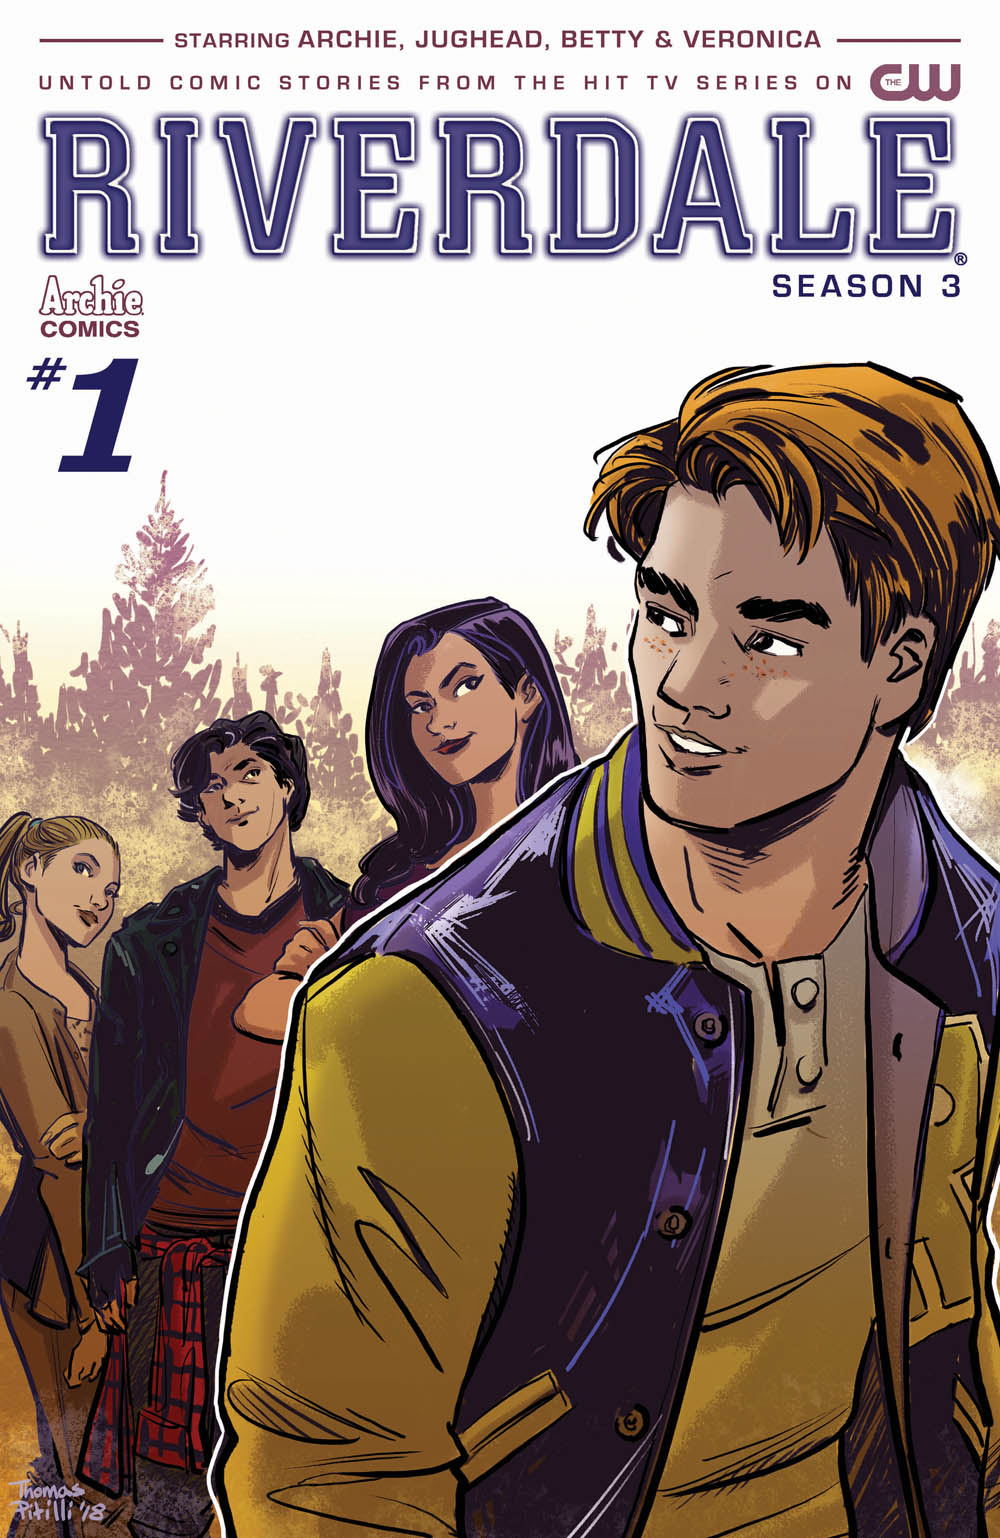 Image result for riverdale season 3 issue 1